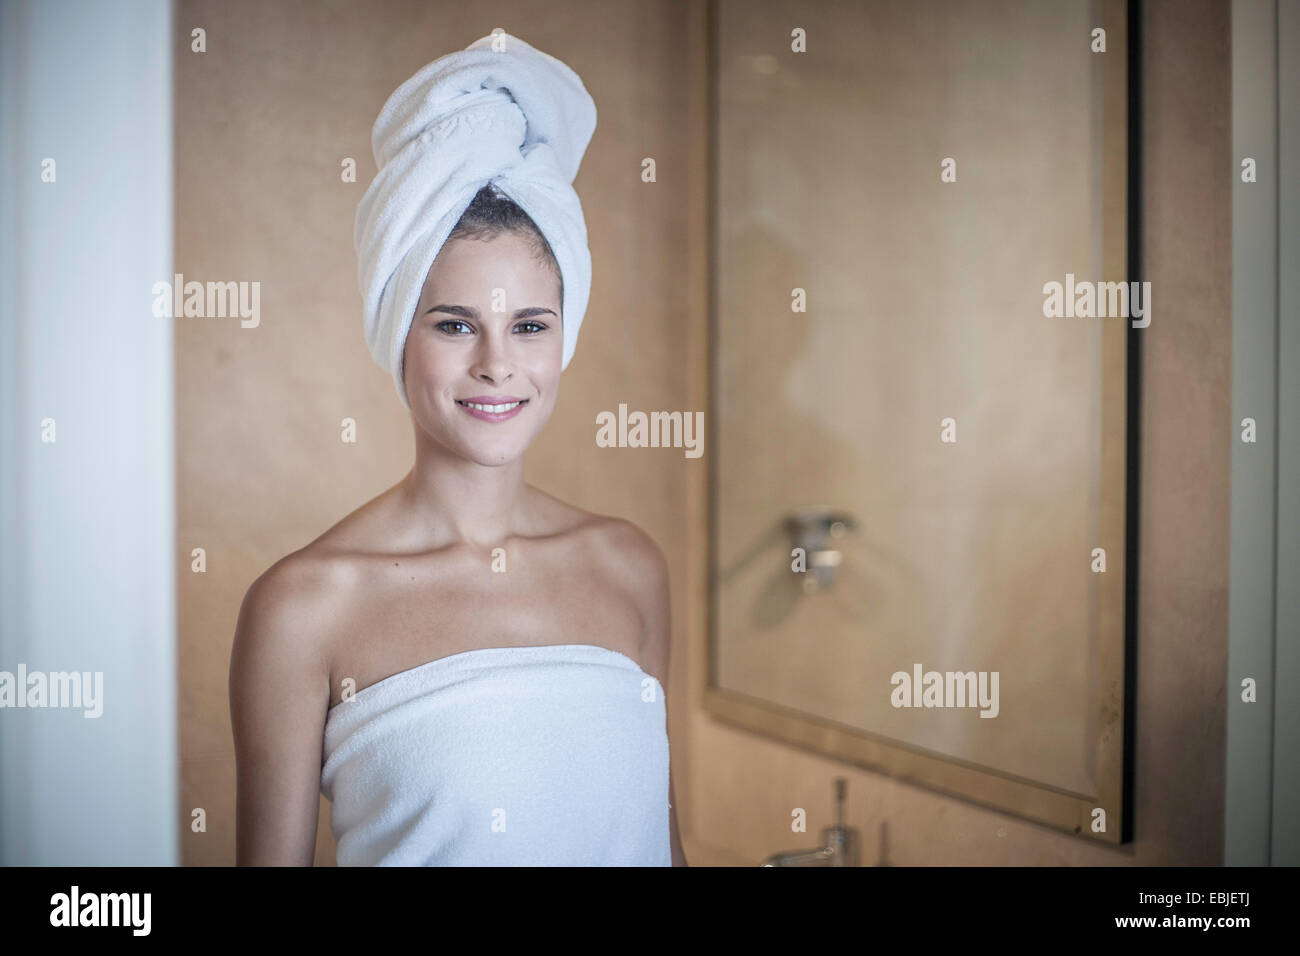 Young woman with towel on head - Stock Image